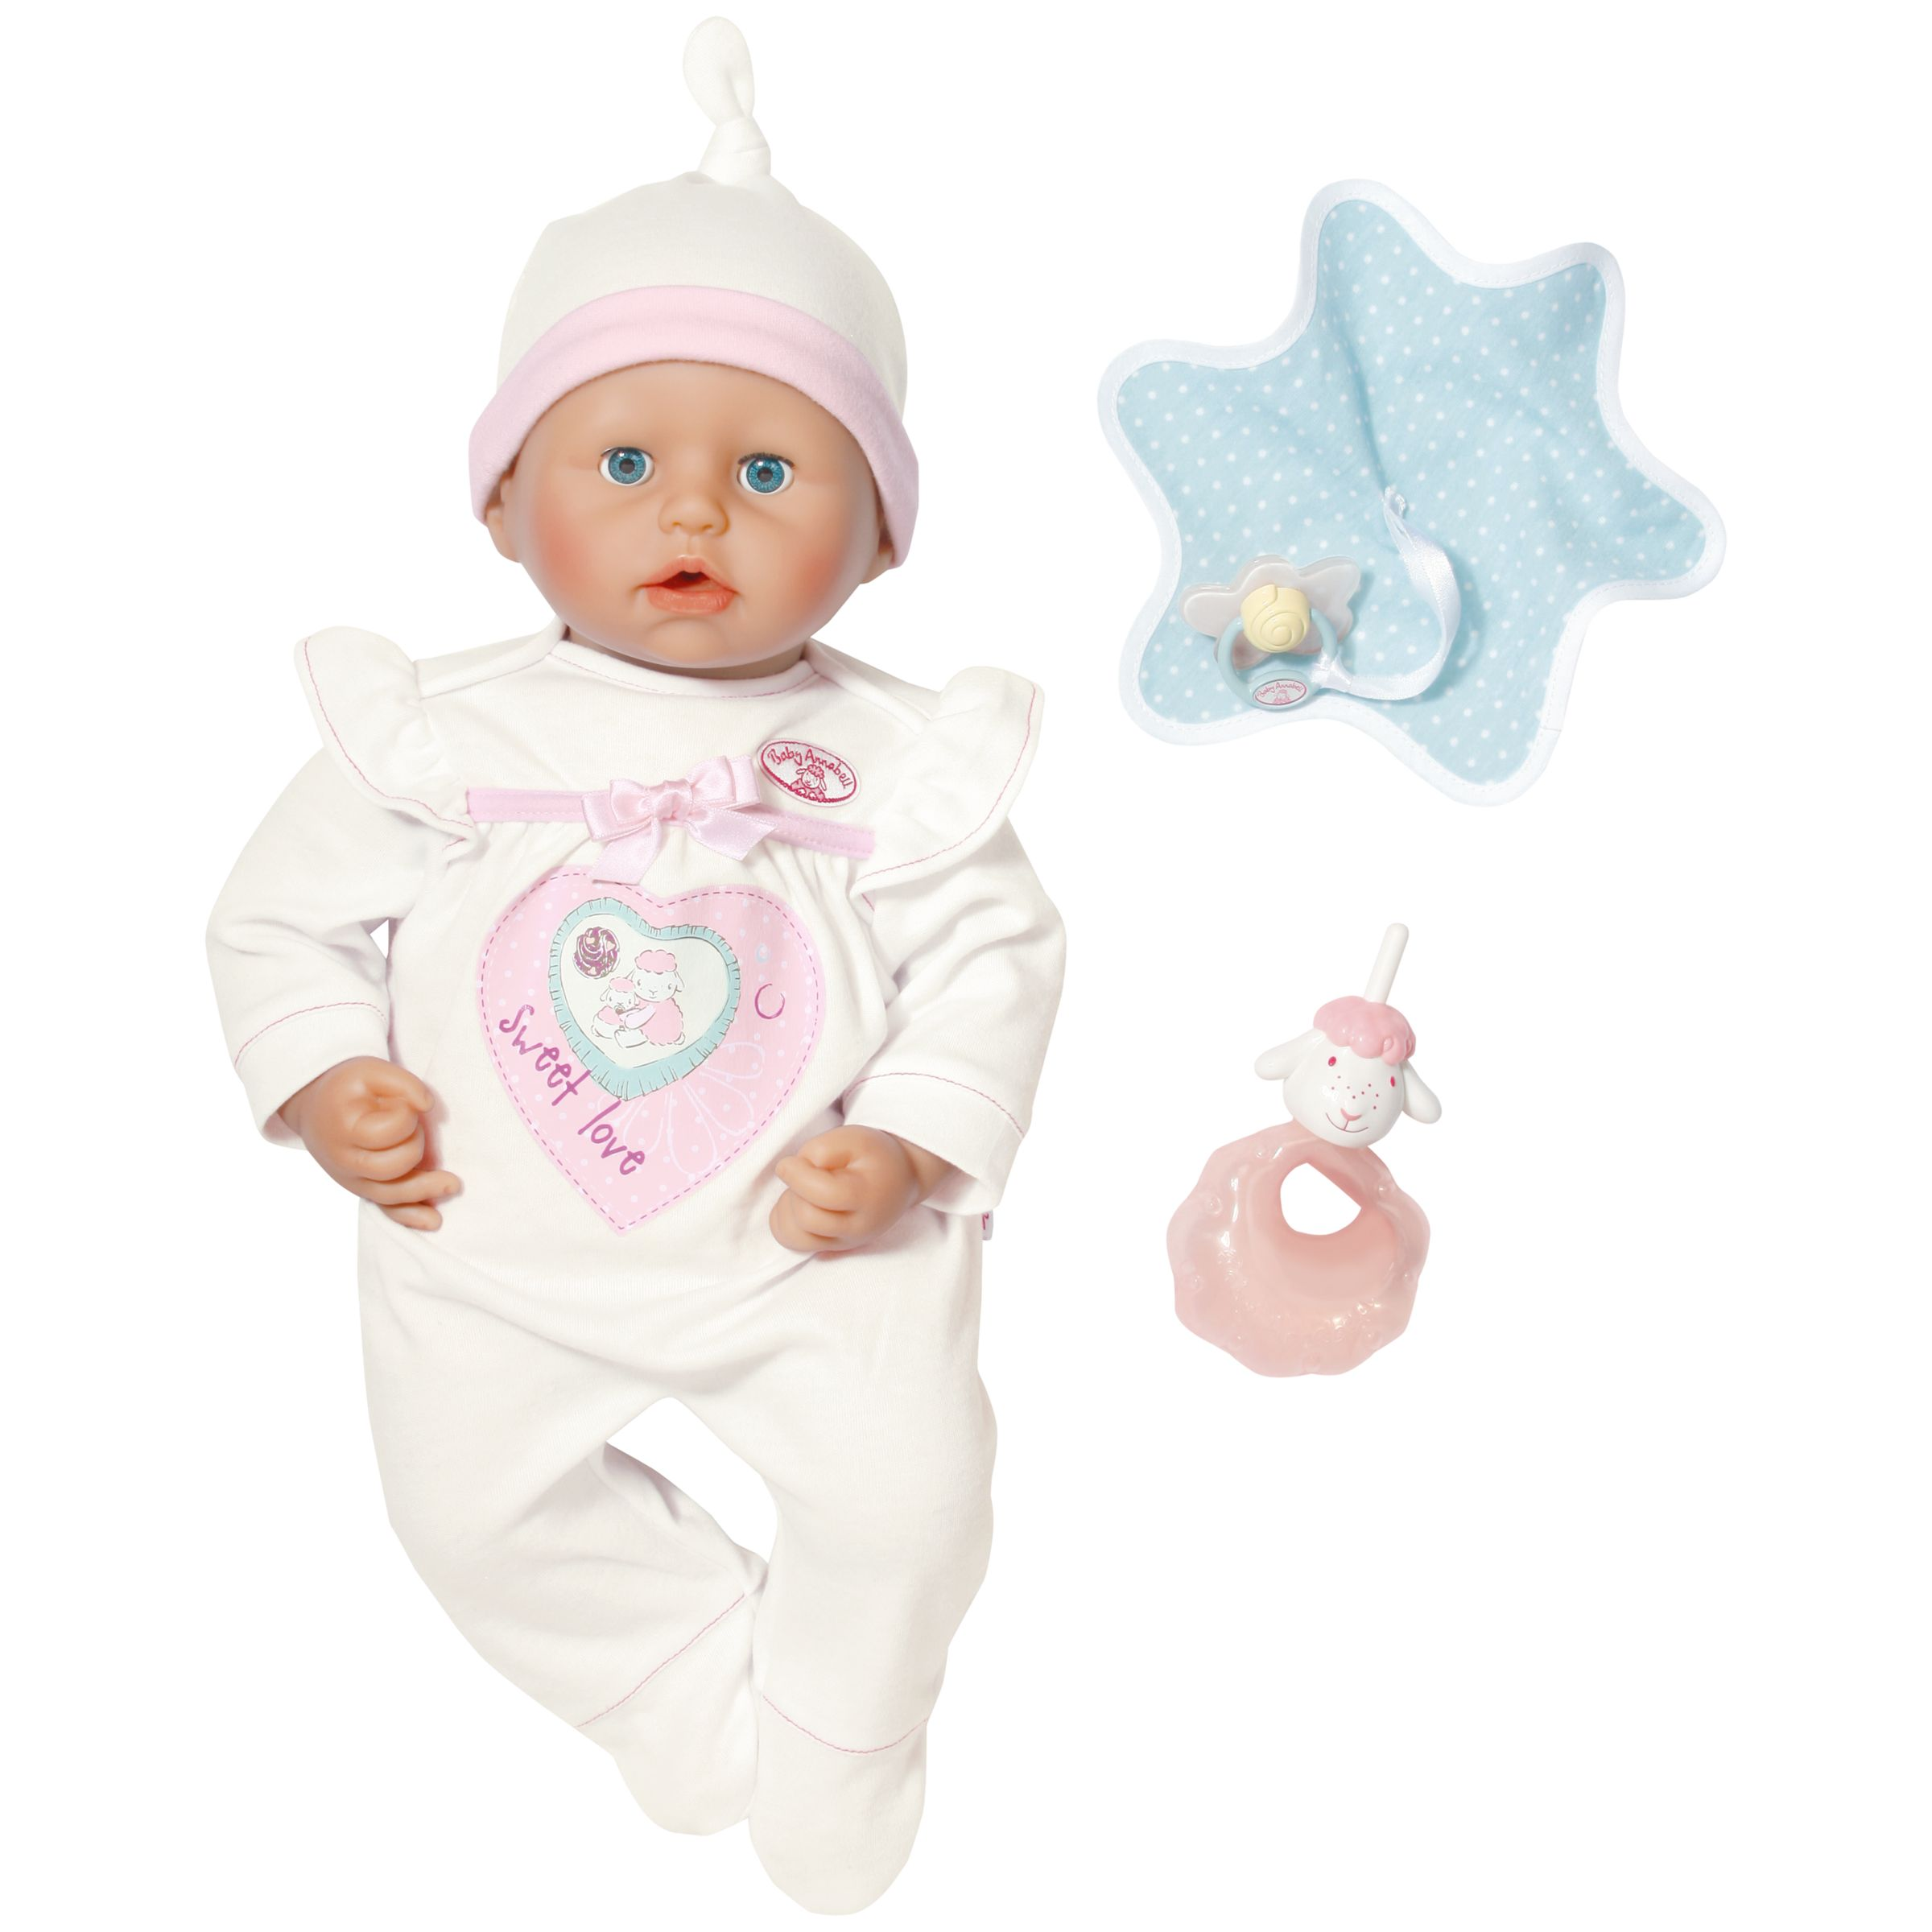 Baby Annabell Doll: 2012 Edition